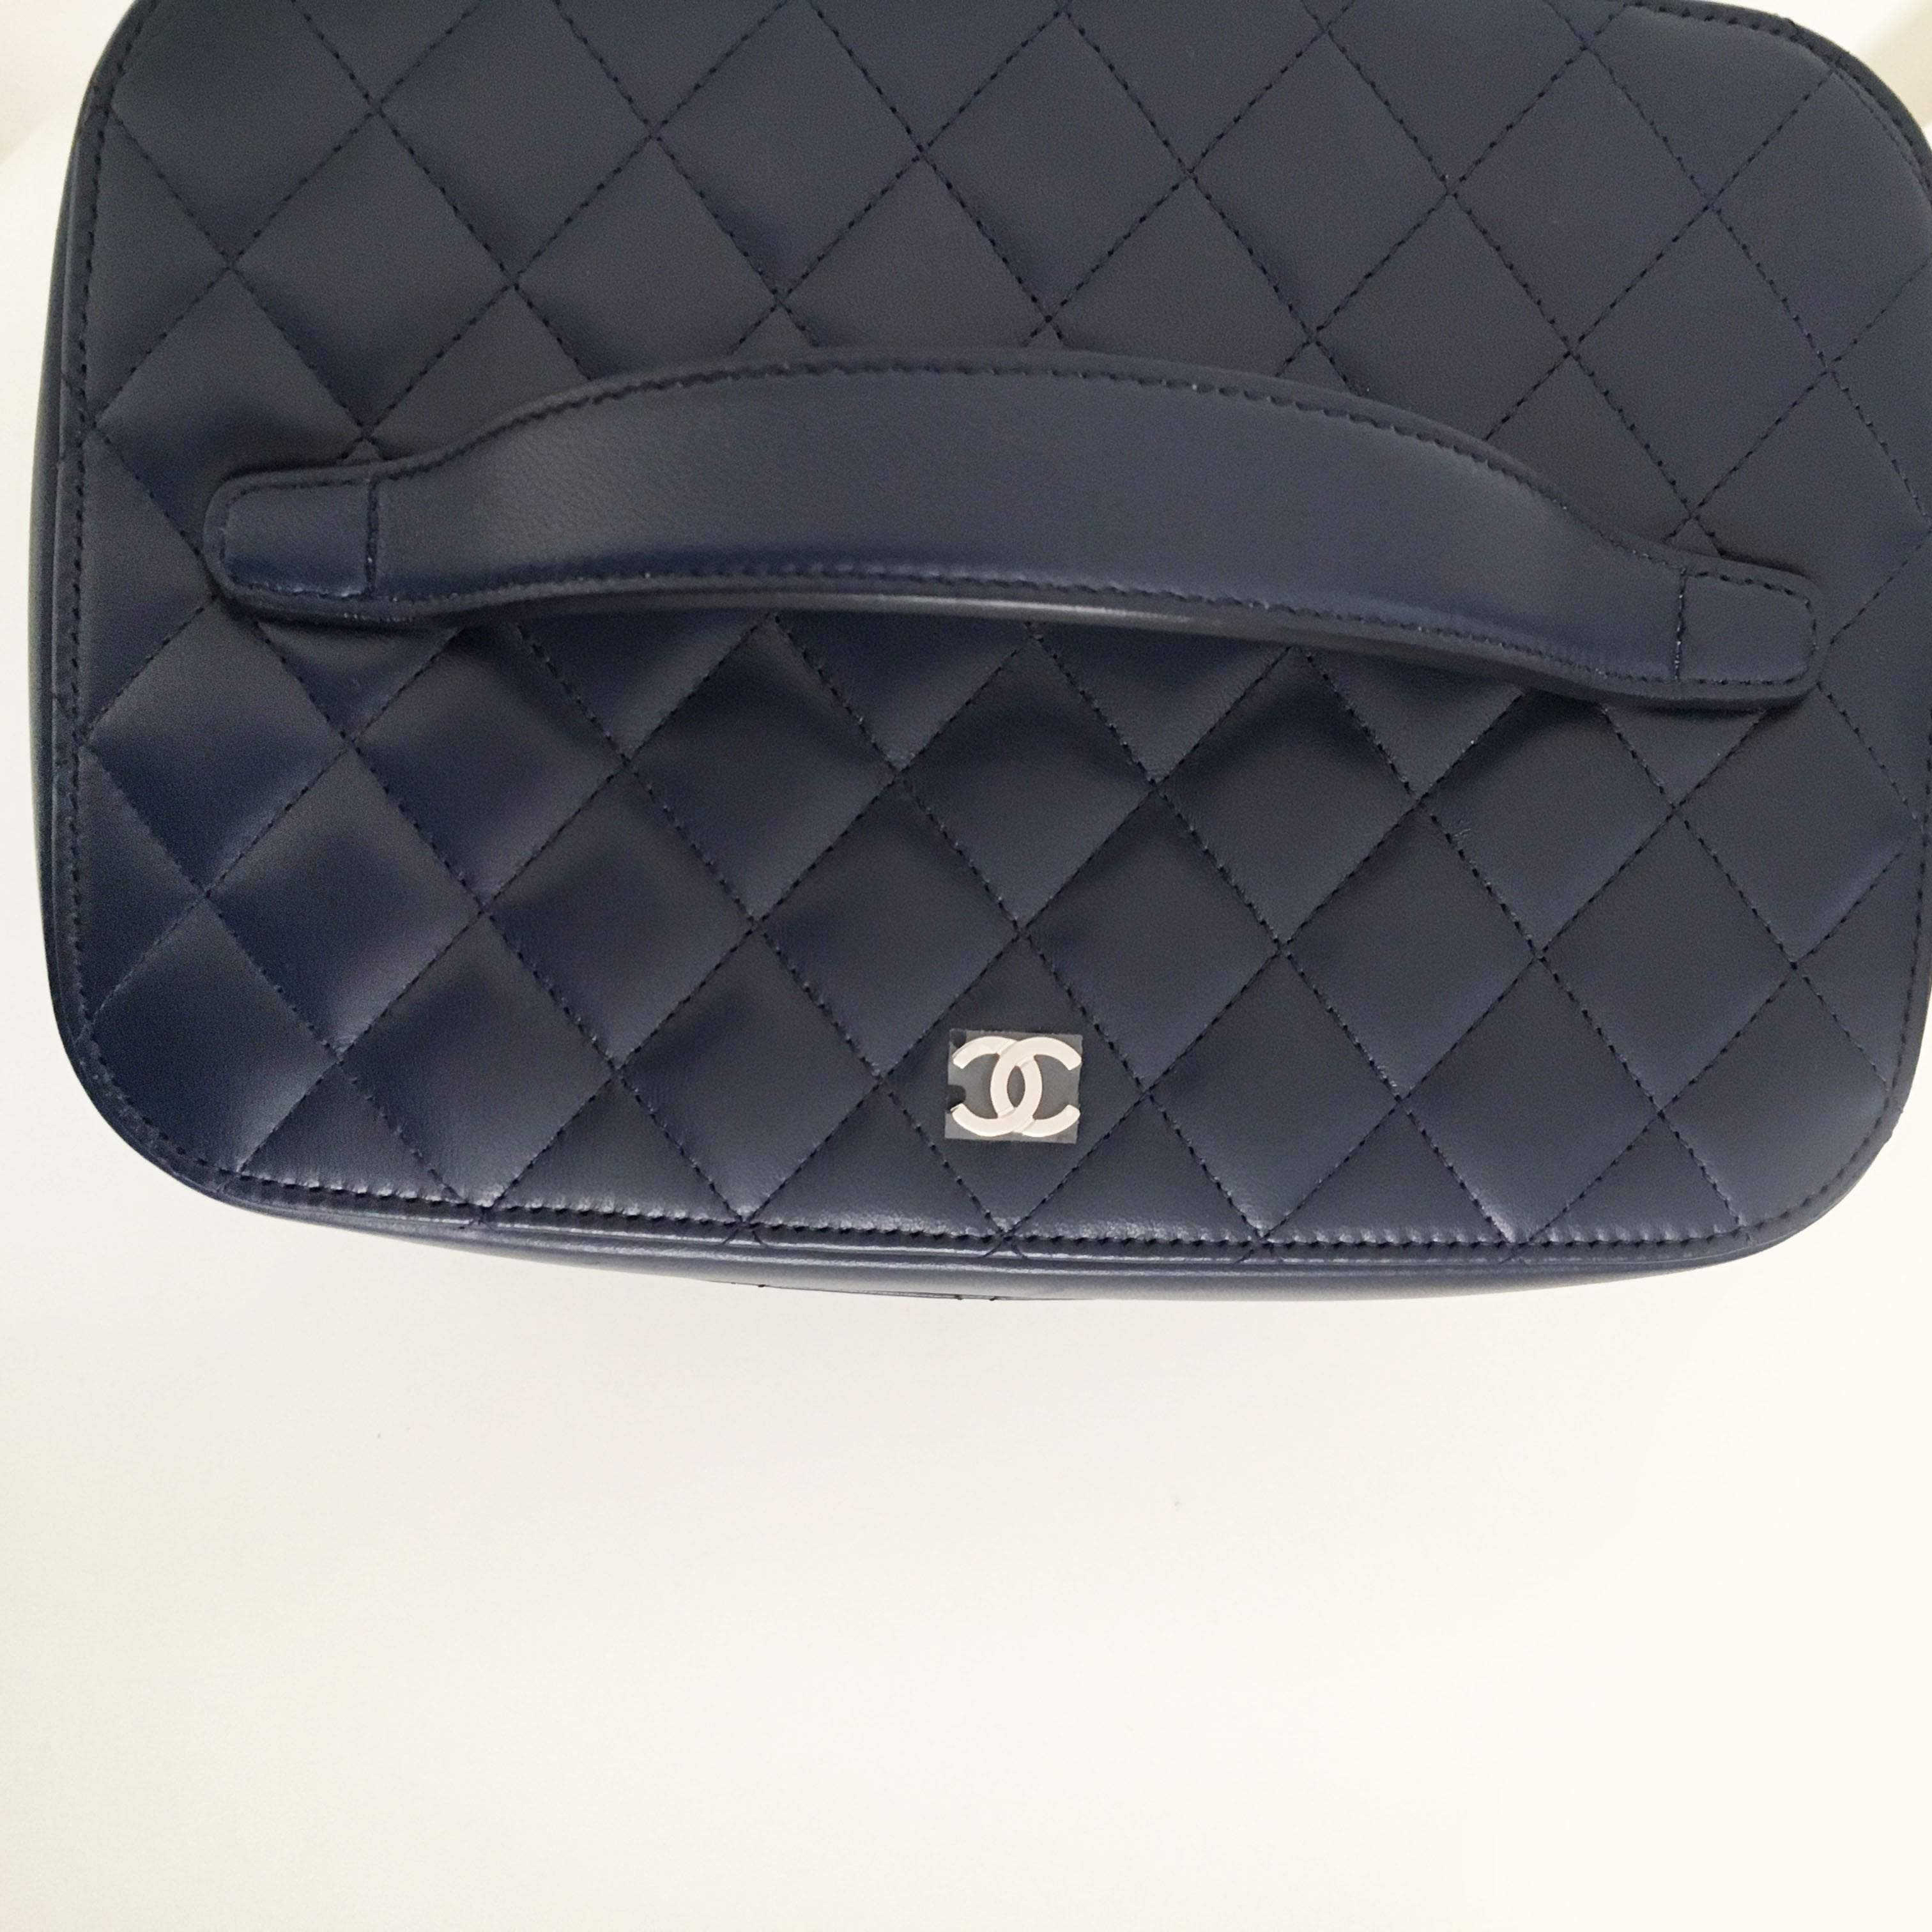 Chanel Blue Quilted Lambskin Leather Vanity Case Bag